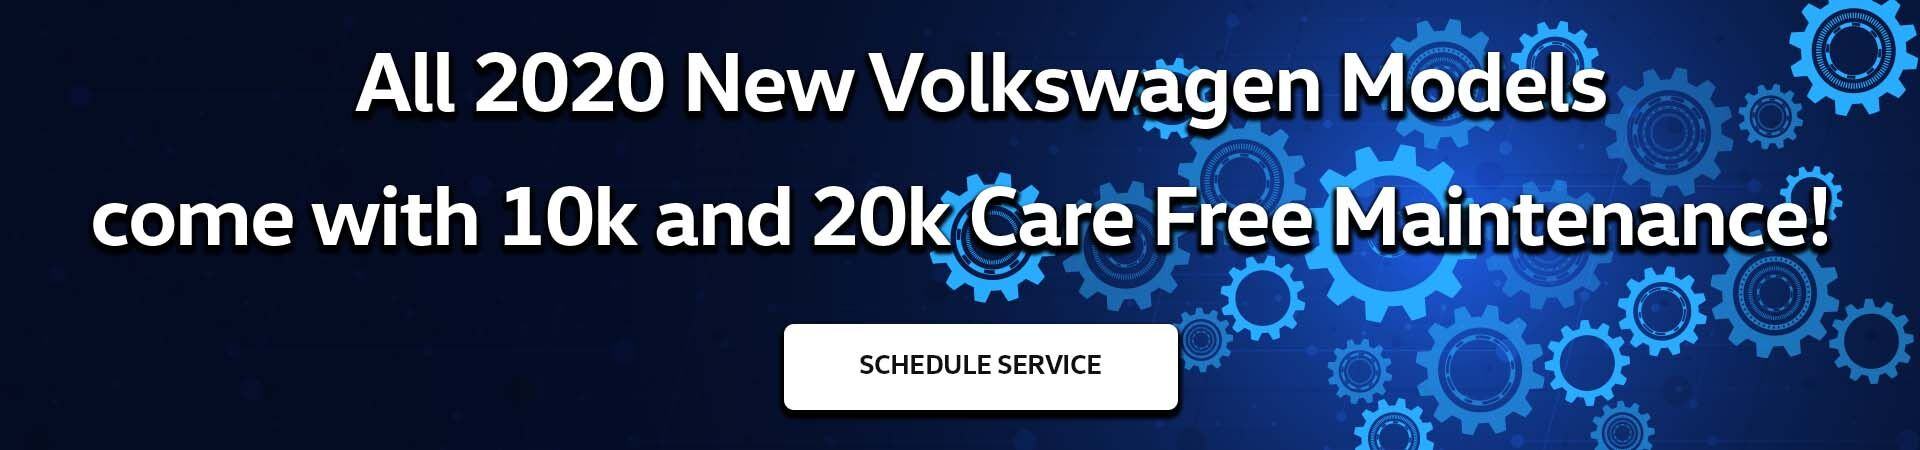 Volkswagen Care Free Maintenance Slide